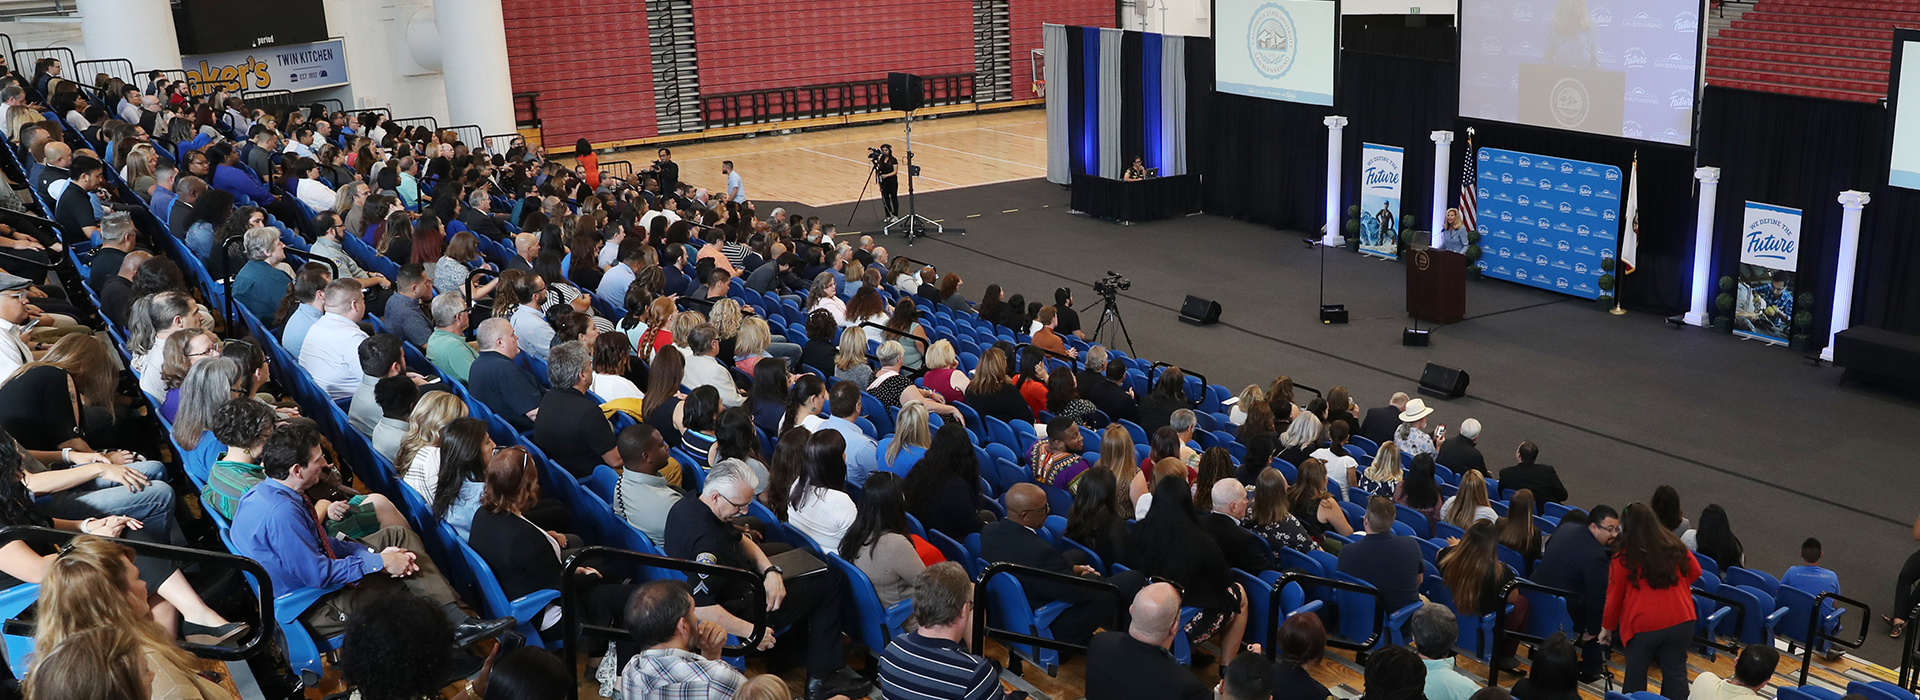 Comprehensive Campaign among achievements shared at Convocation